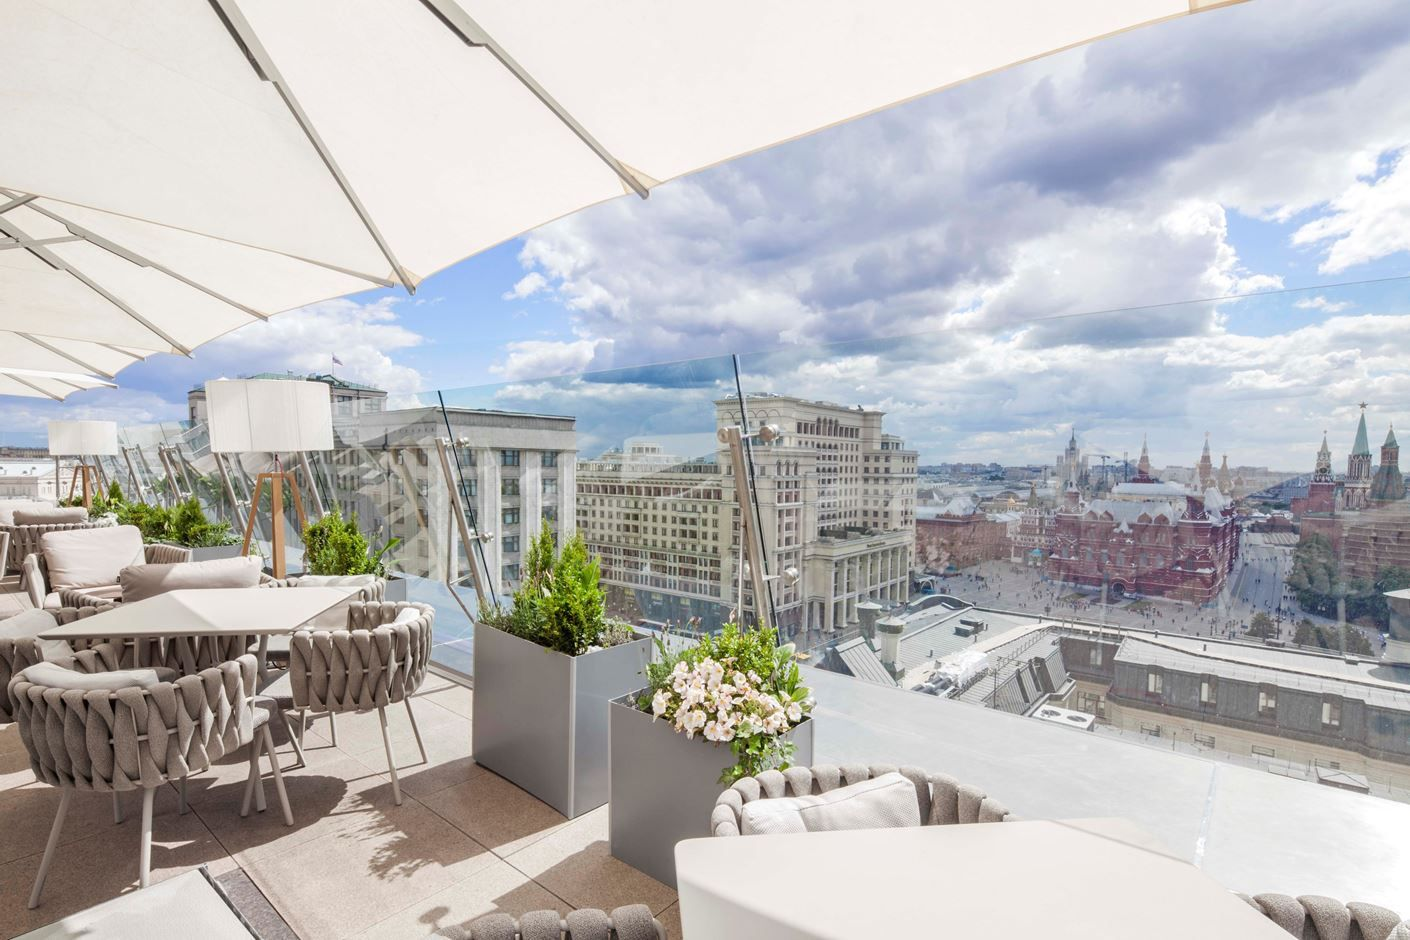 The Ritz Carlton Moscow / O2 Lounge Terrace - Picture gallery